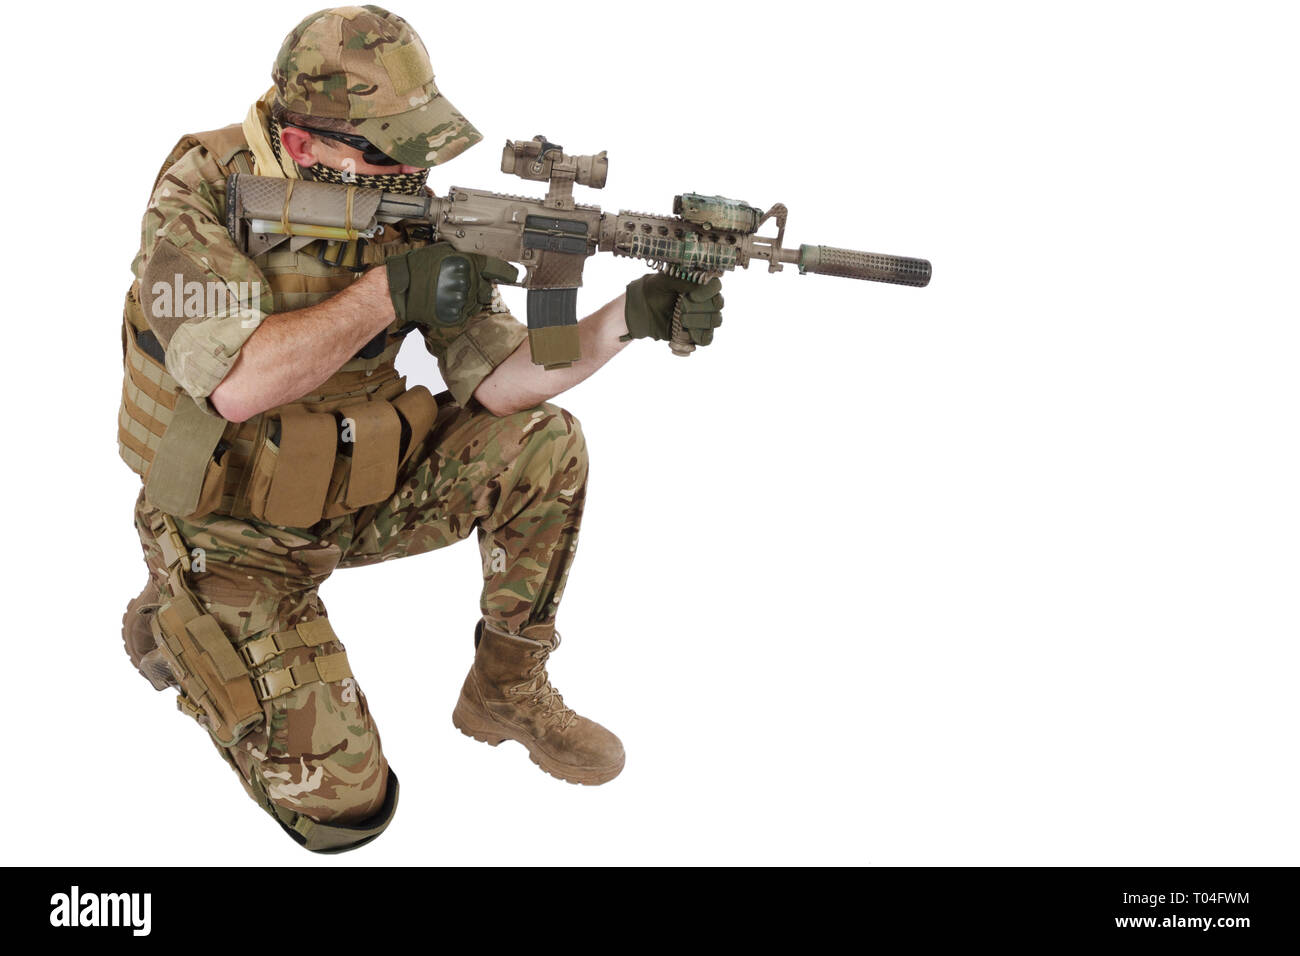 Private Military Company contractor with assault rifle on white background - Stock Image